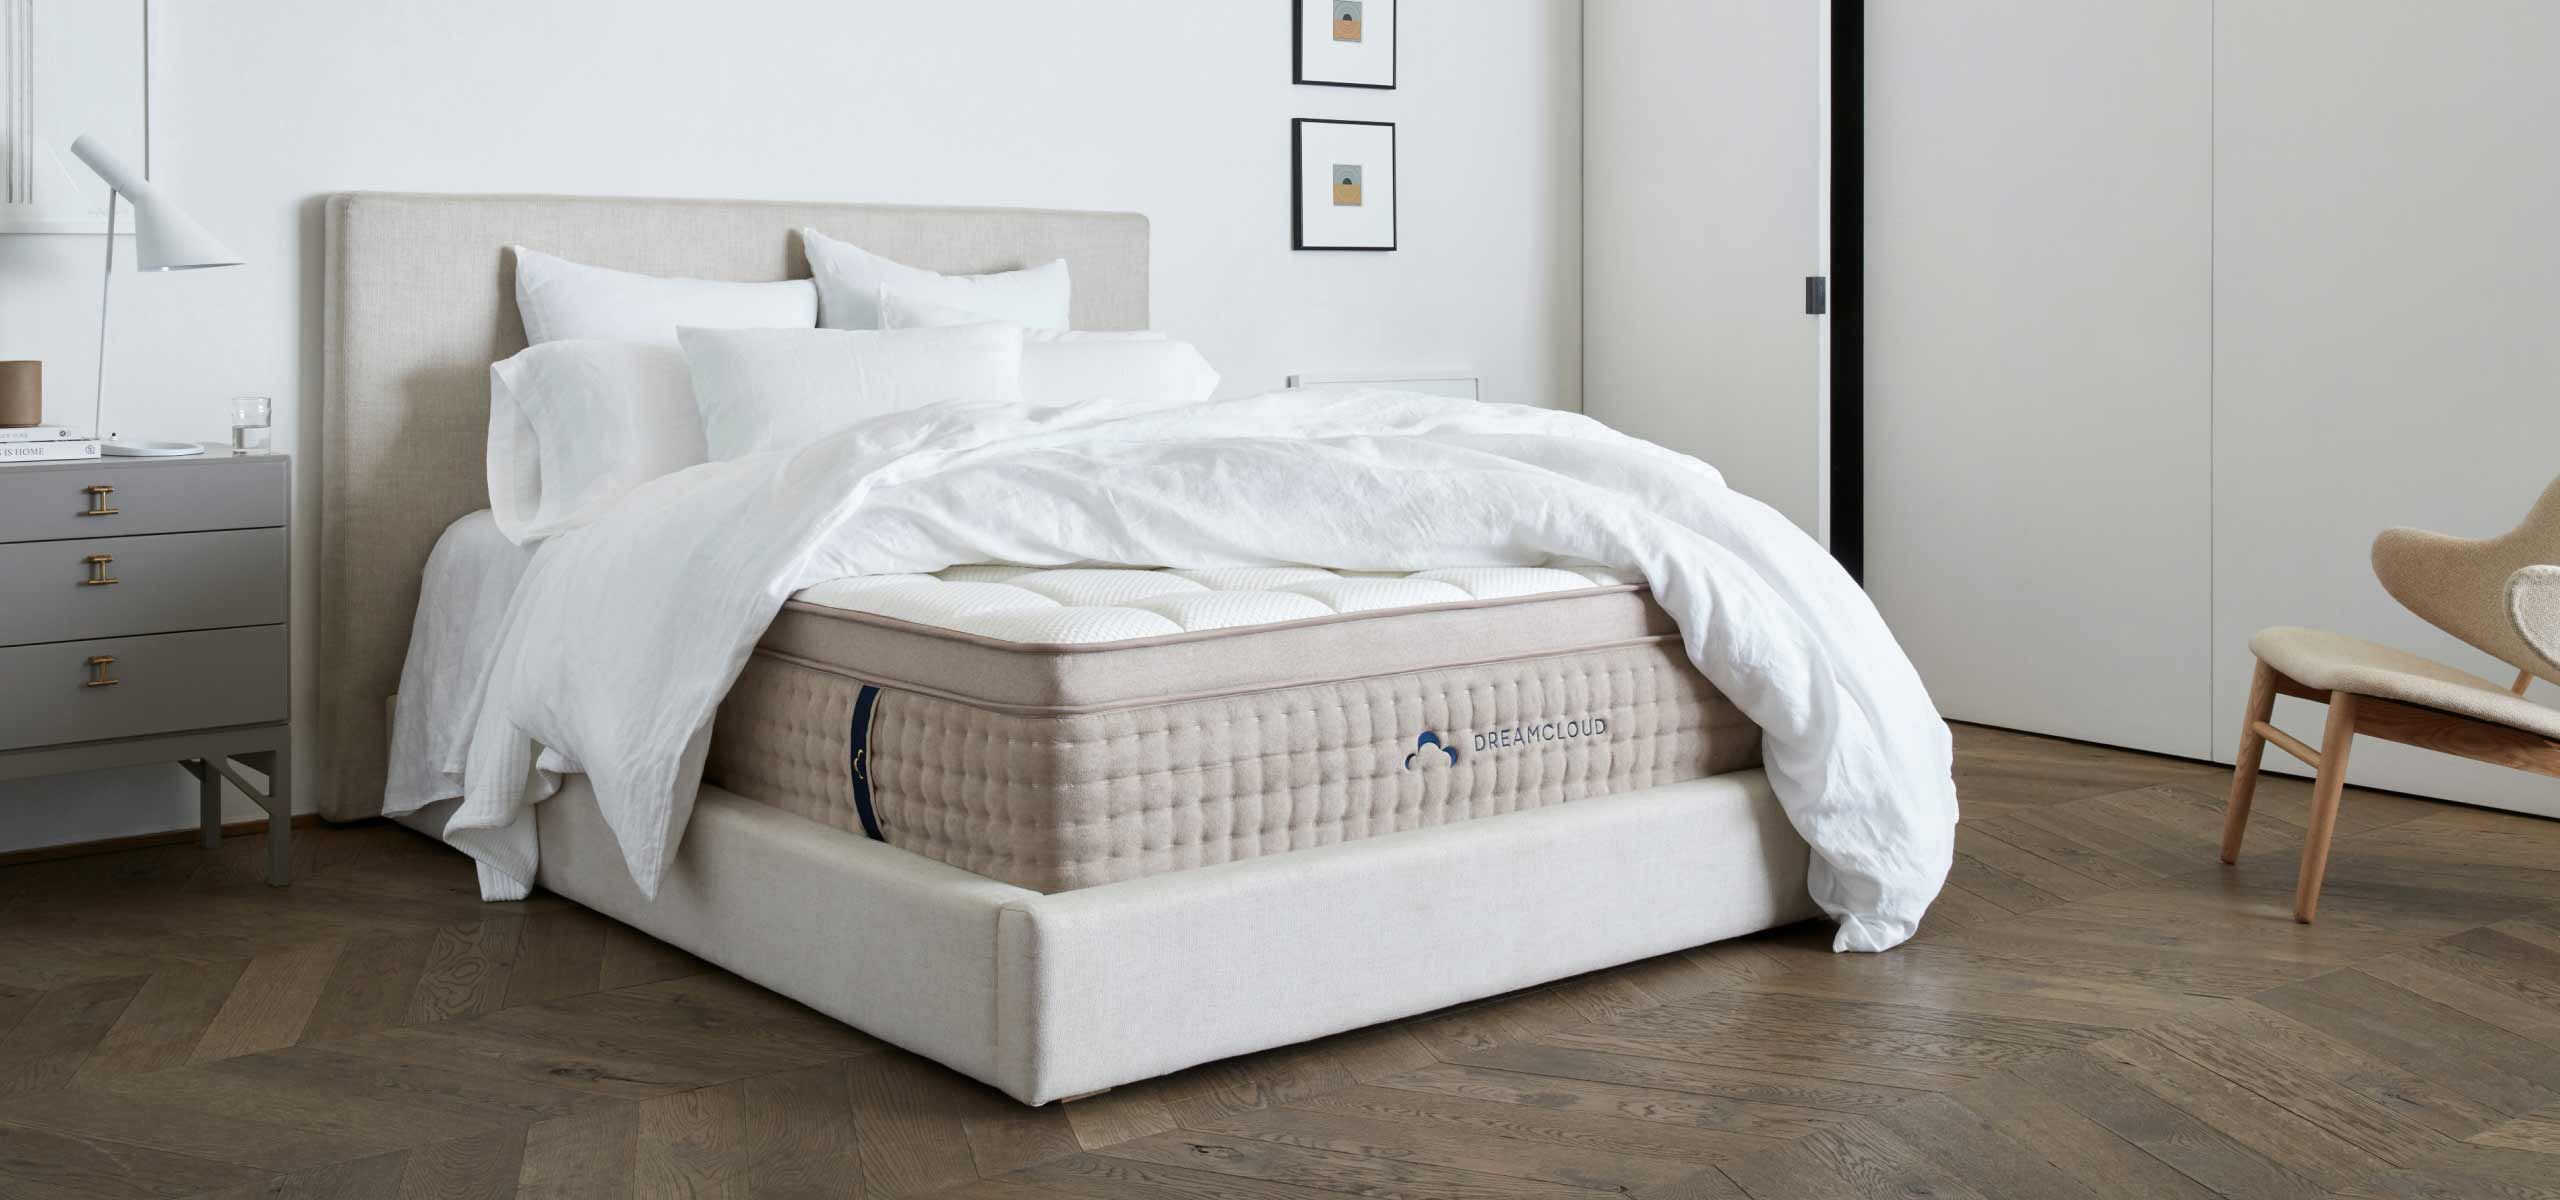 Online Mattress Wars Which Company Suitable For Better Sleep